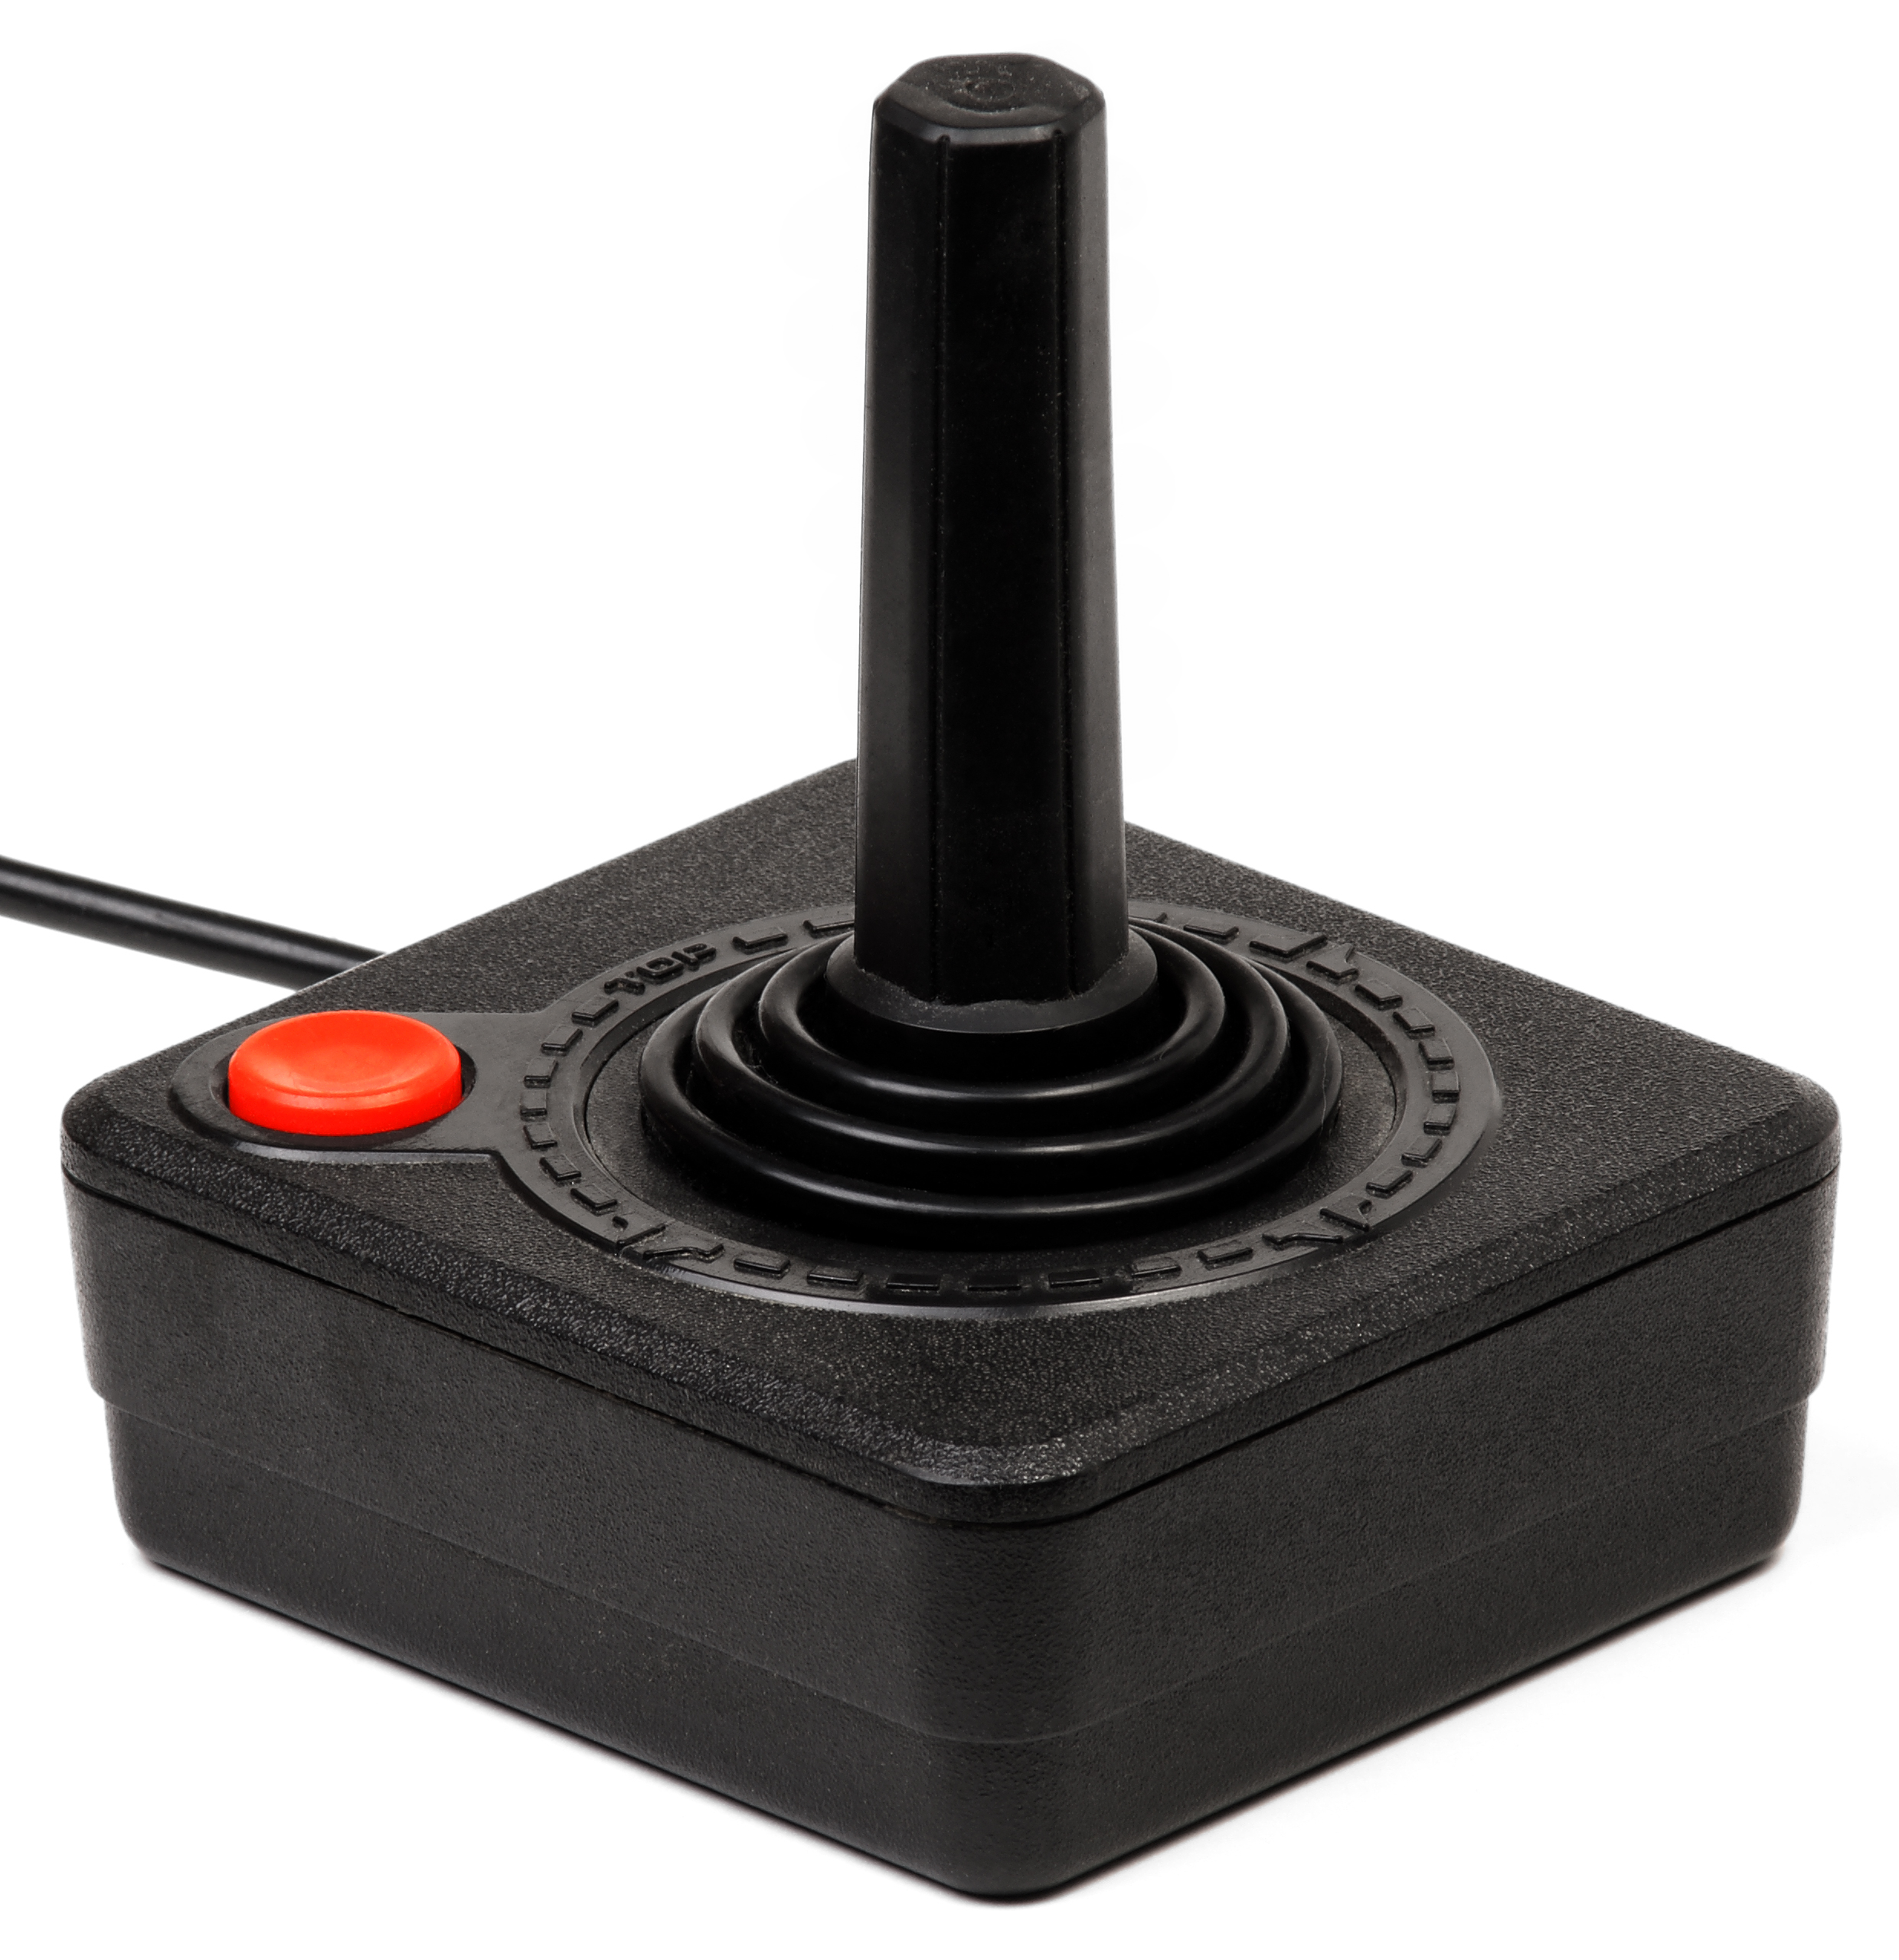 Image result for atari 2600 controller